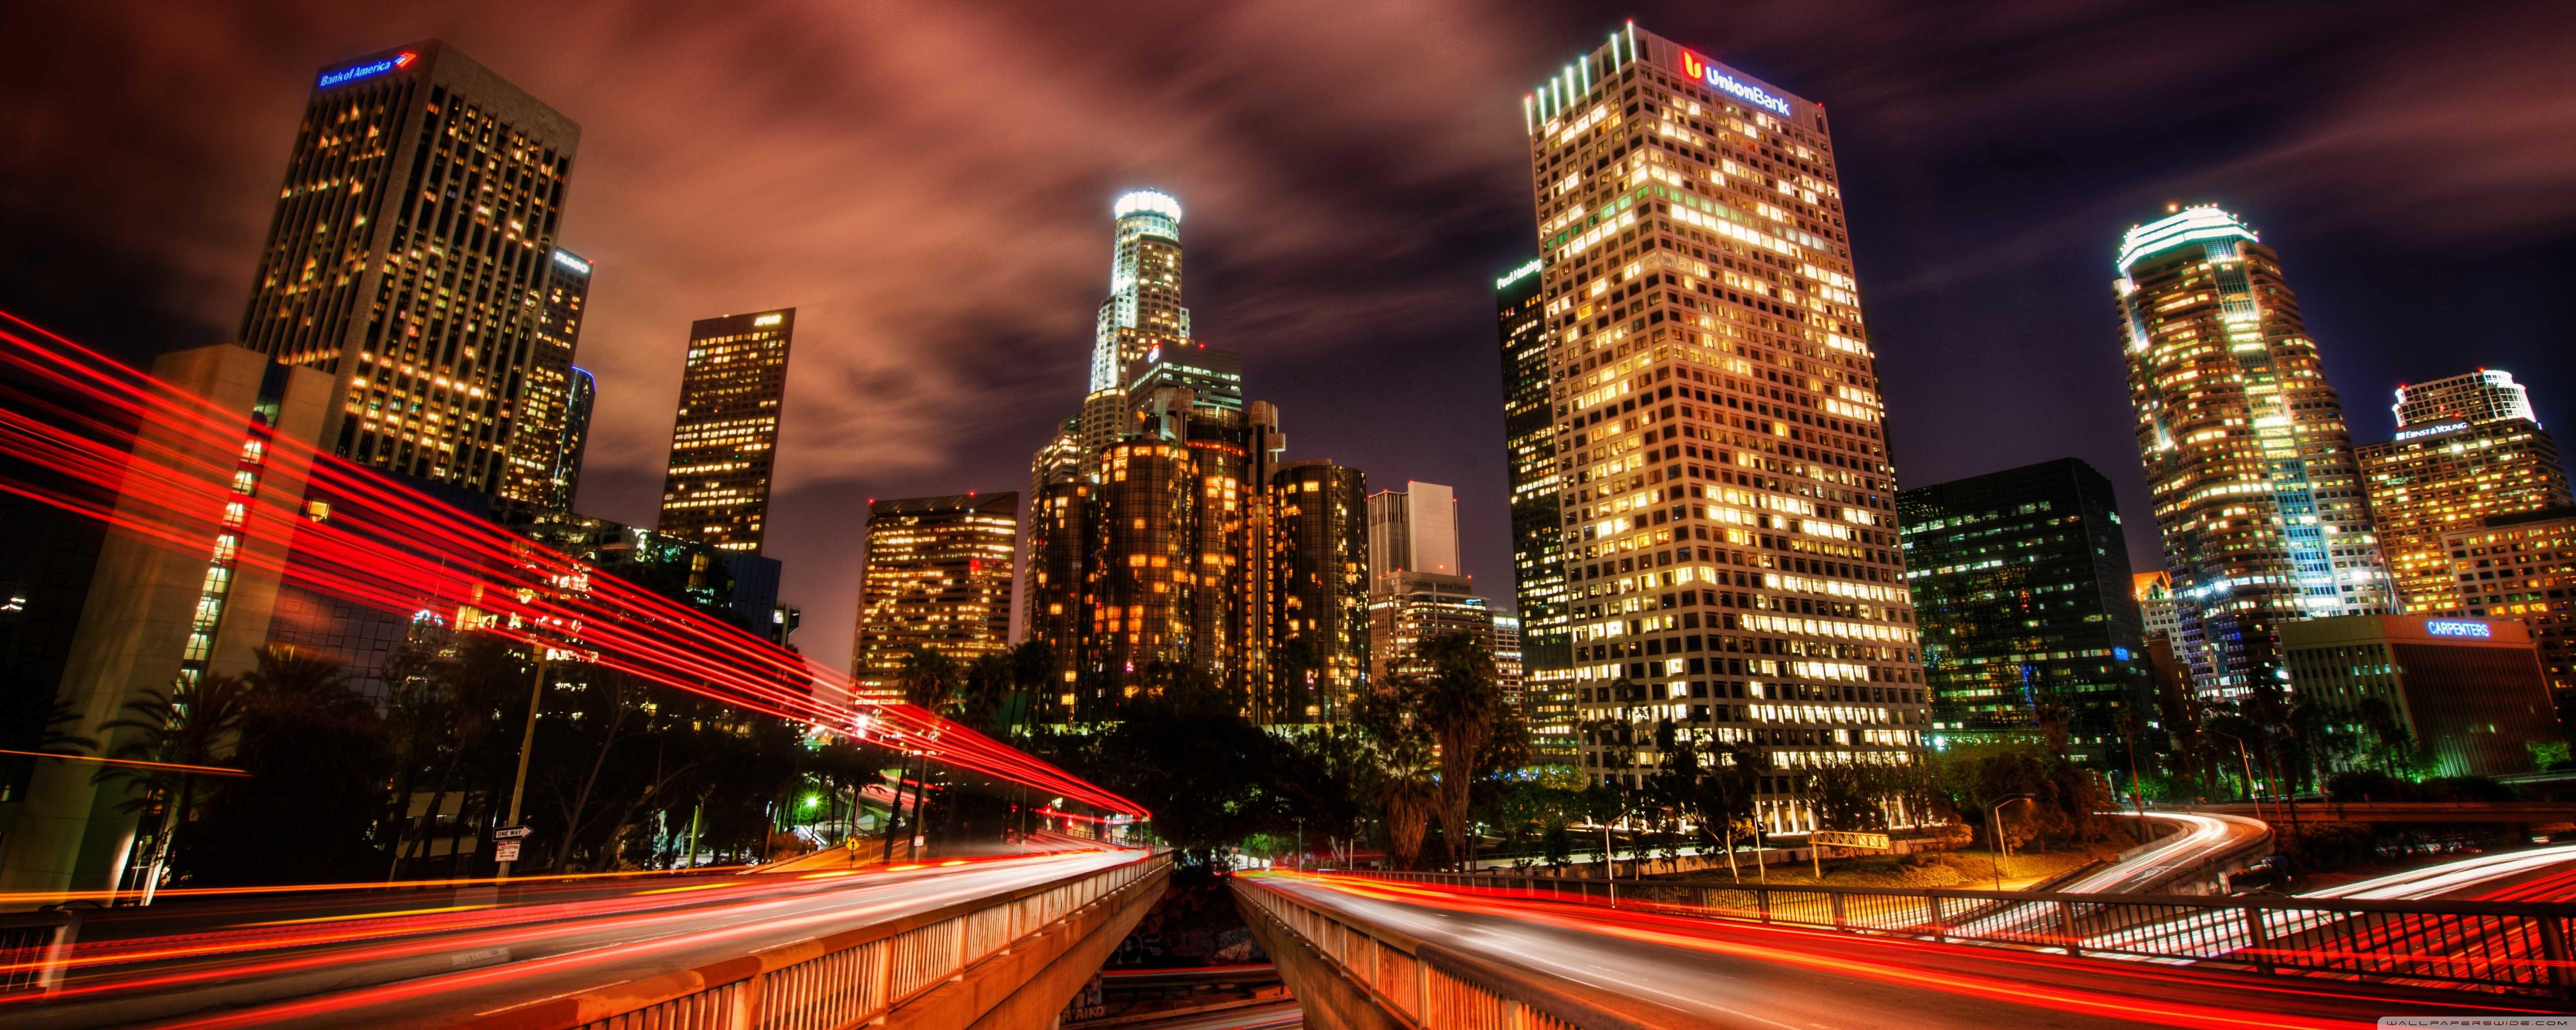 Los Angeles Downtown Wallpaper